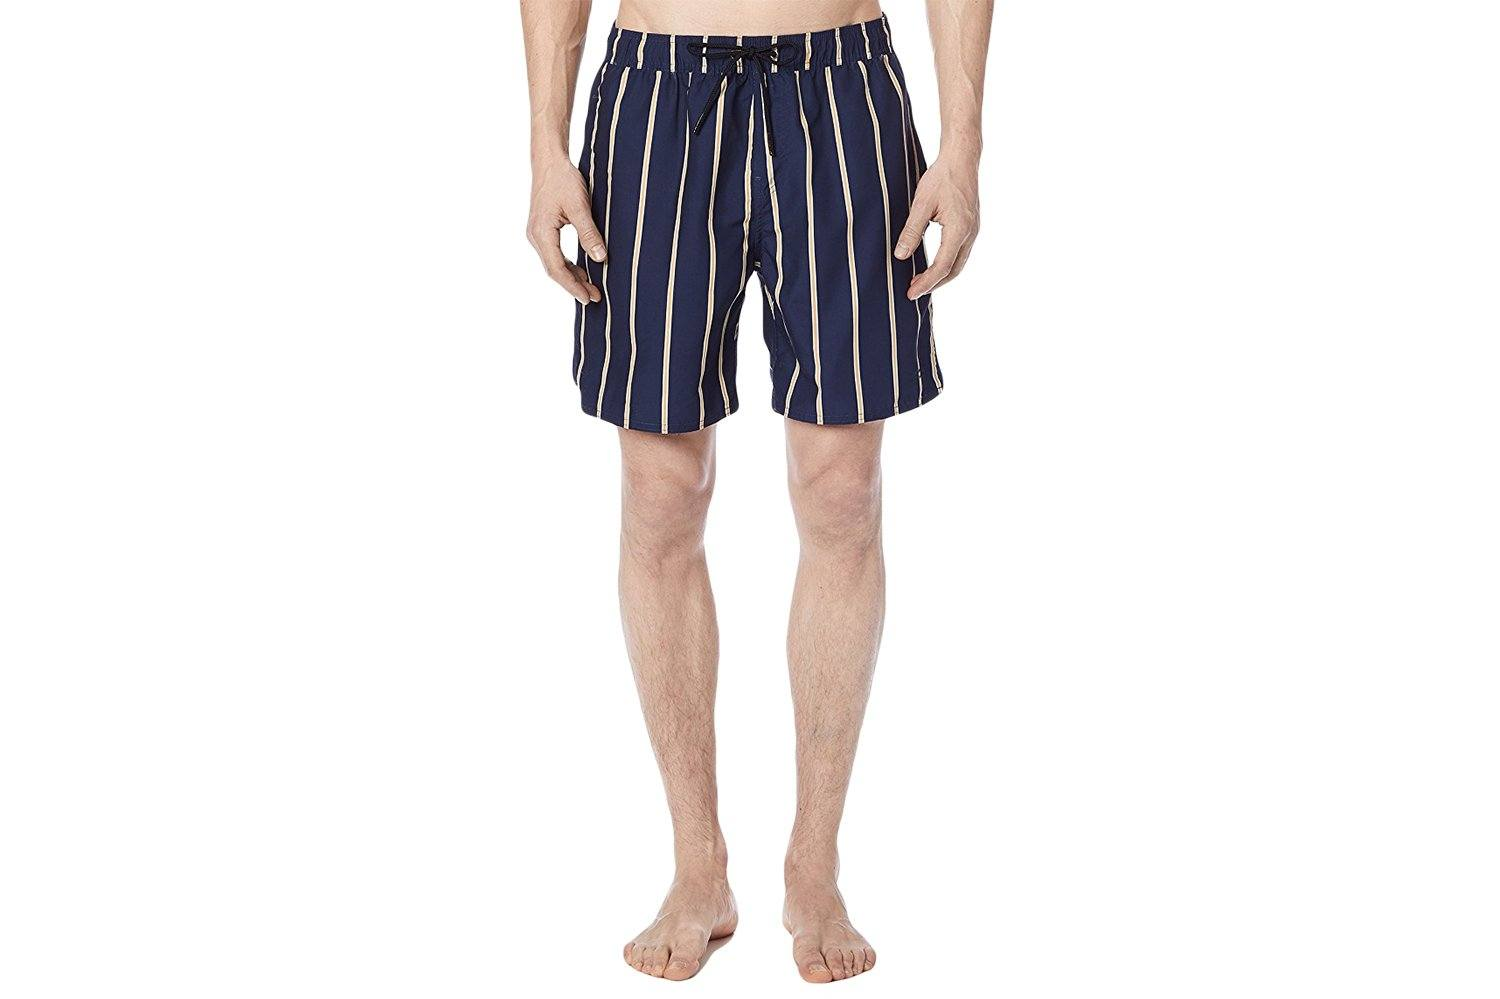 TIMOTHY STRIPE SWIM SHORT MENS SOFTGOODS SATURDAYS NYC